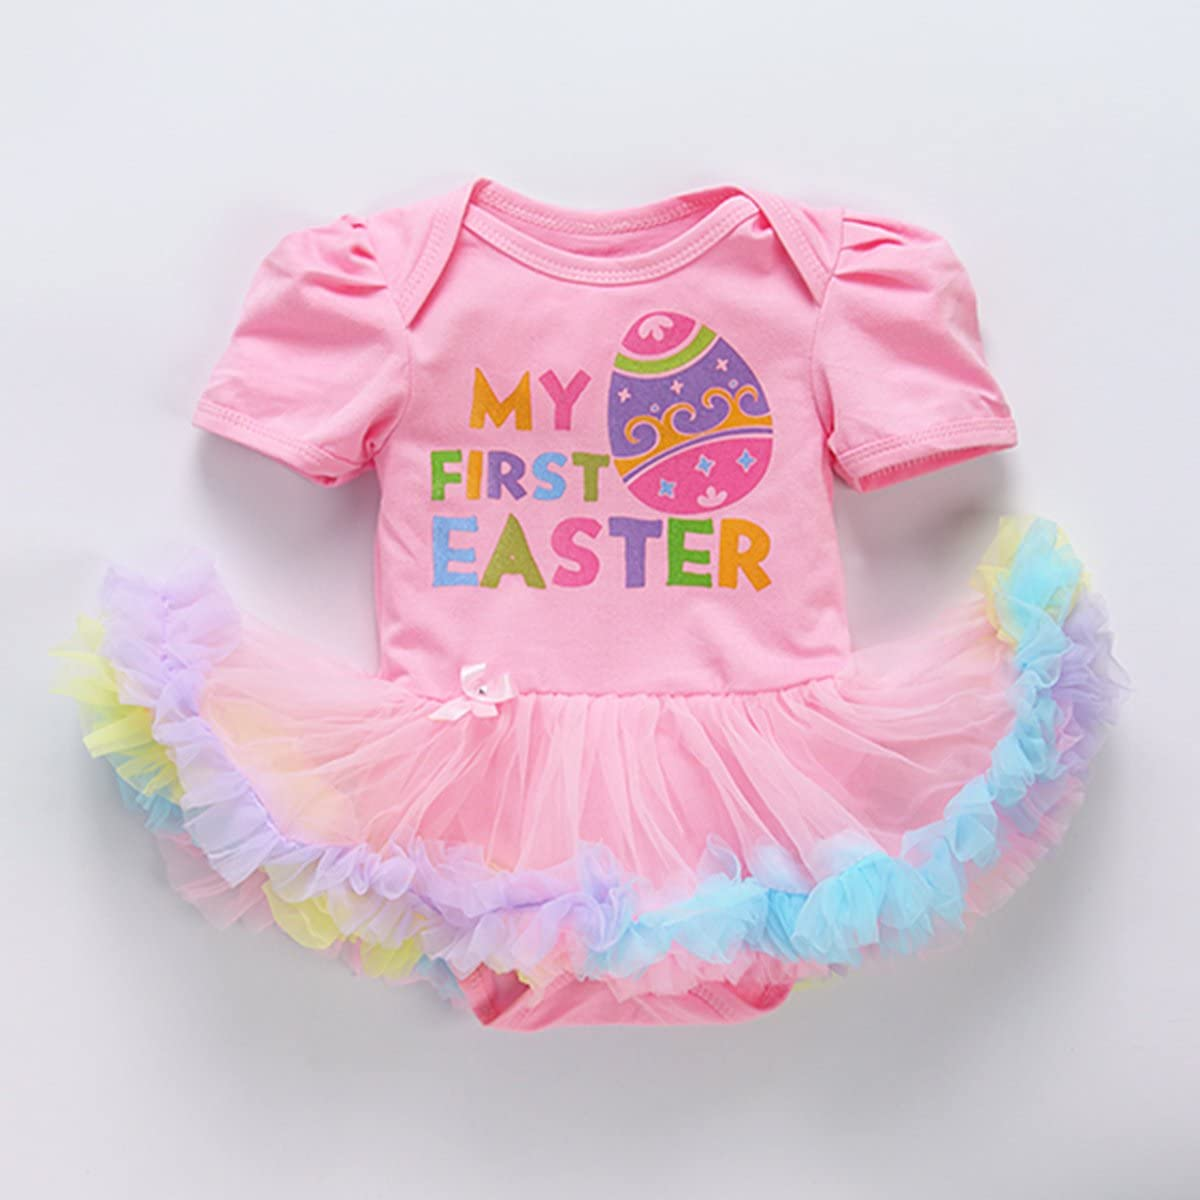 My First Easter Egg Bunny Tutu Baby Grow Outfits Costume Fancy Dress Clothes